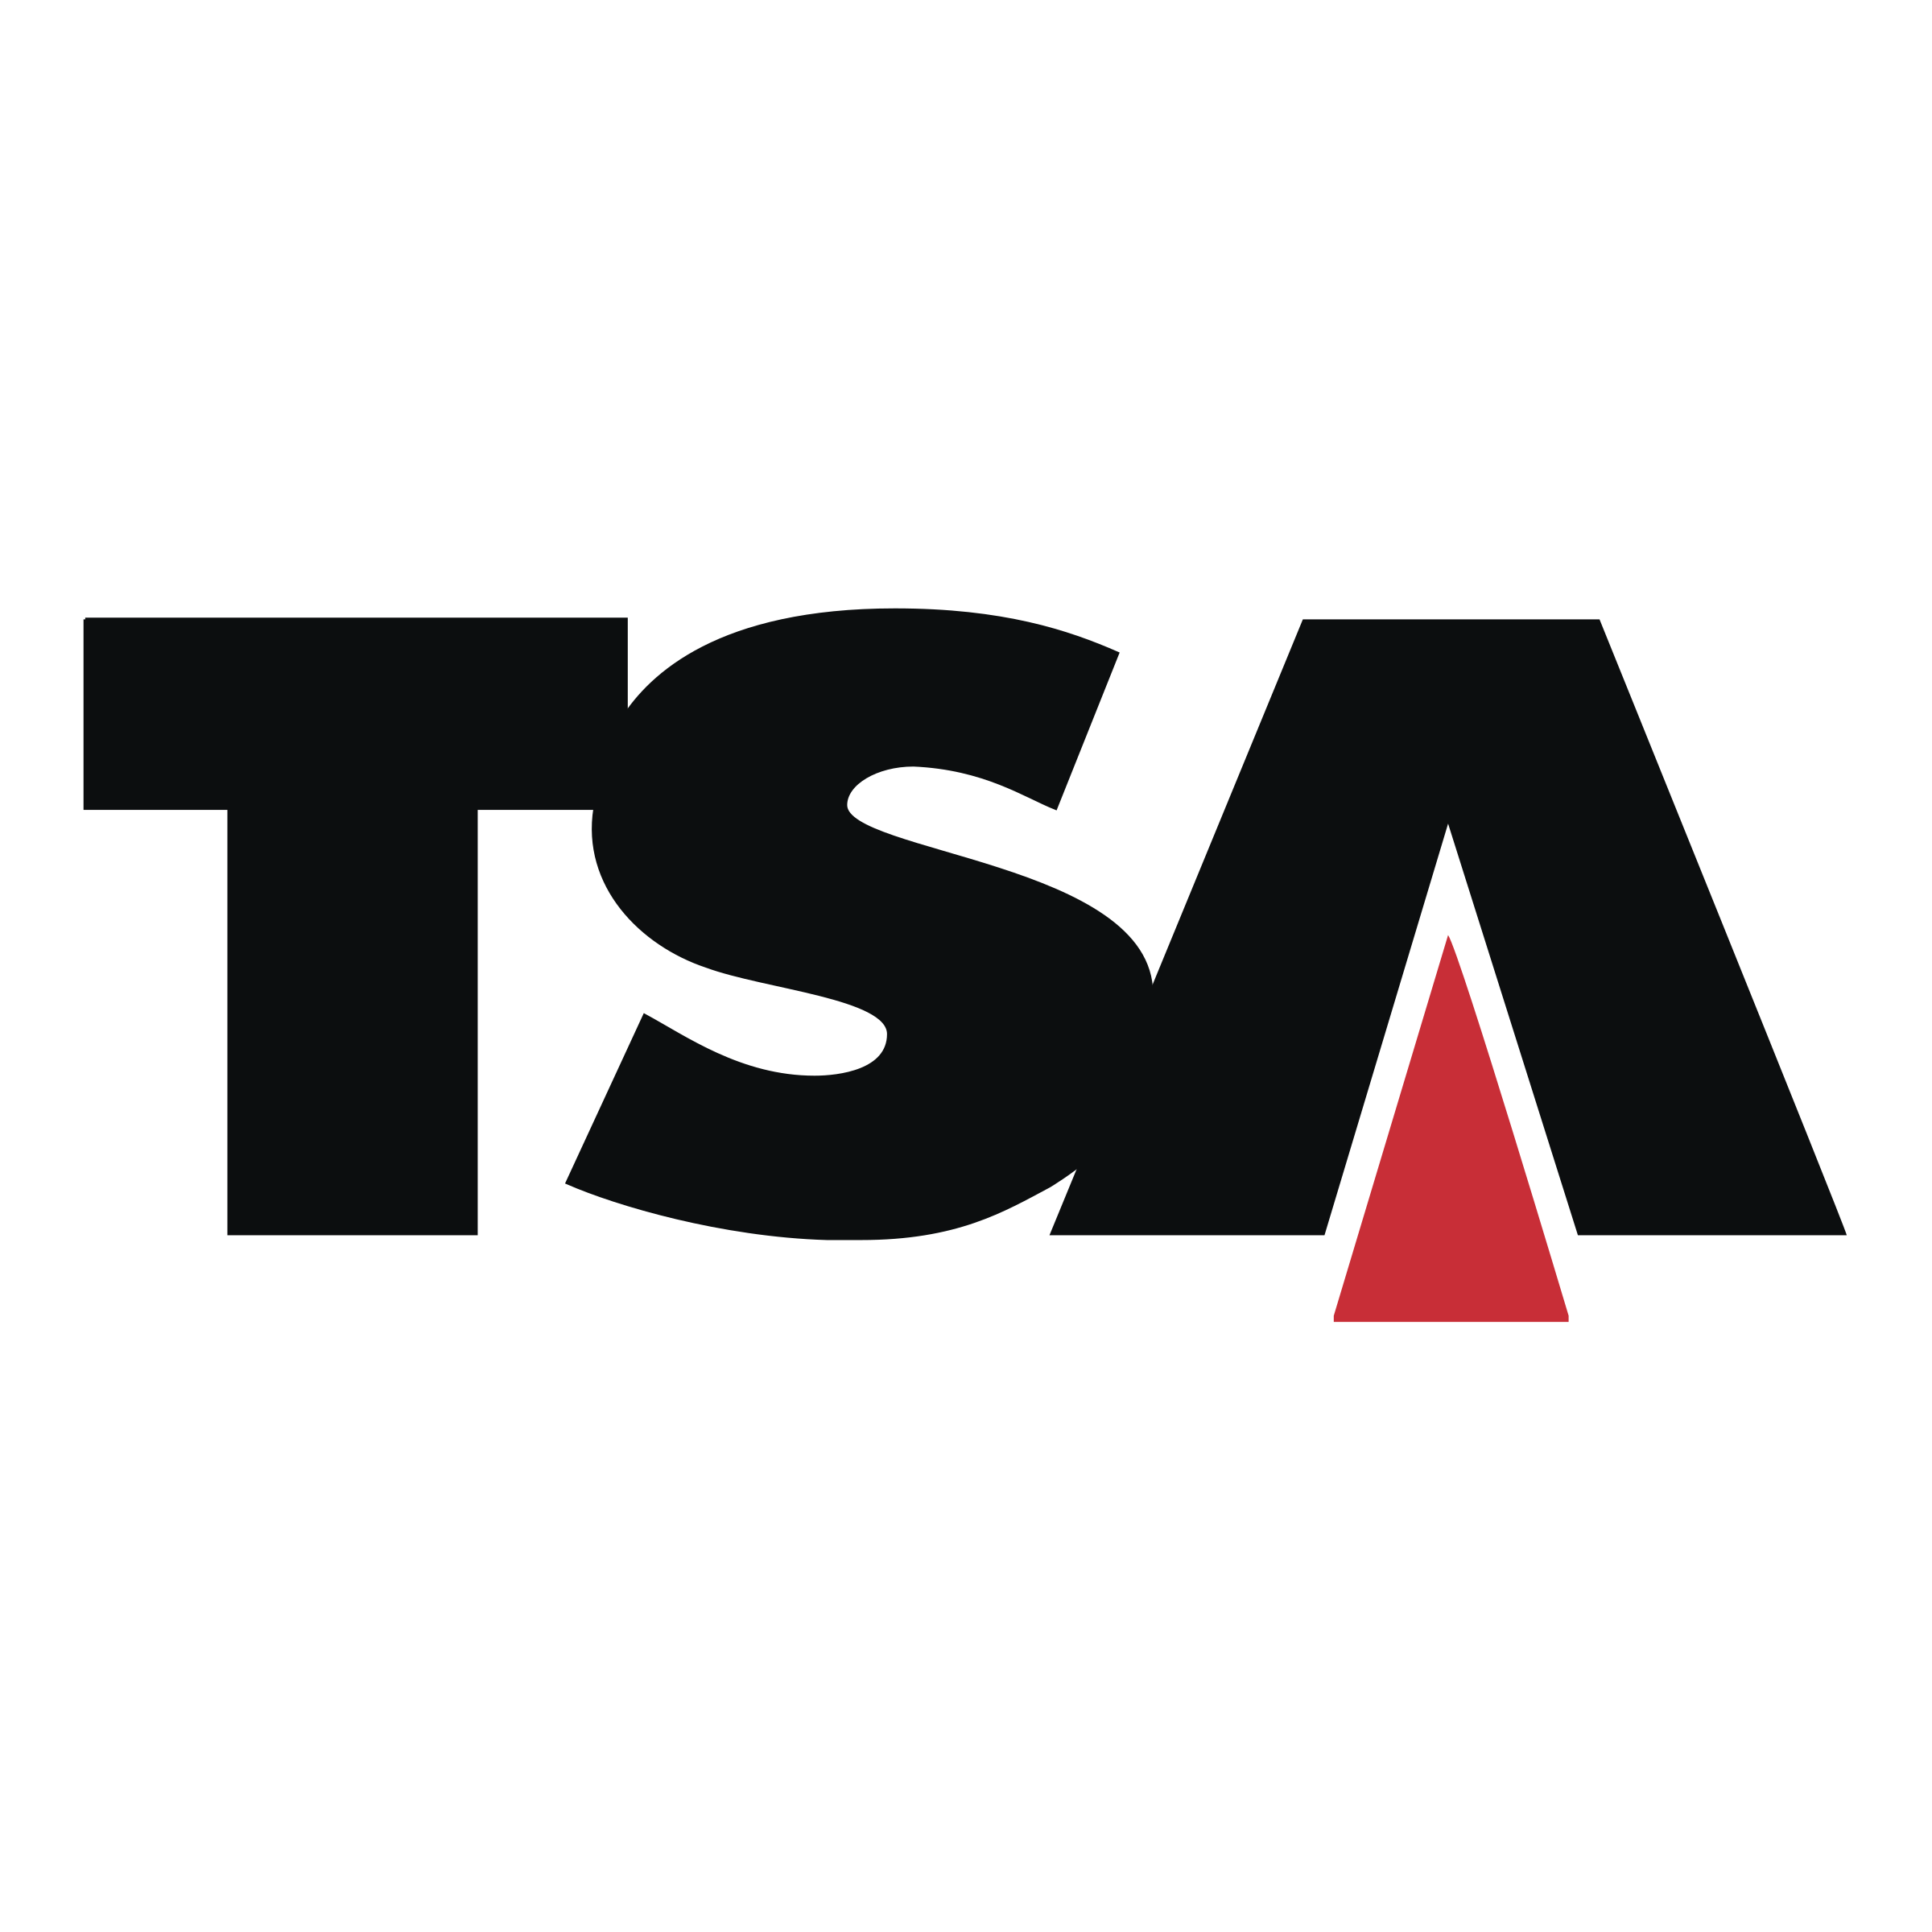 TSA Logo PNG Transparent & SVG Vector.